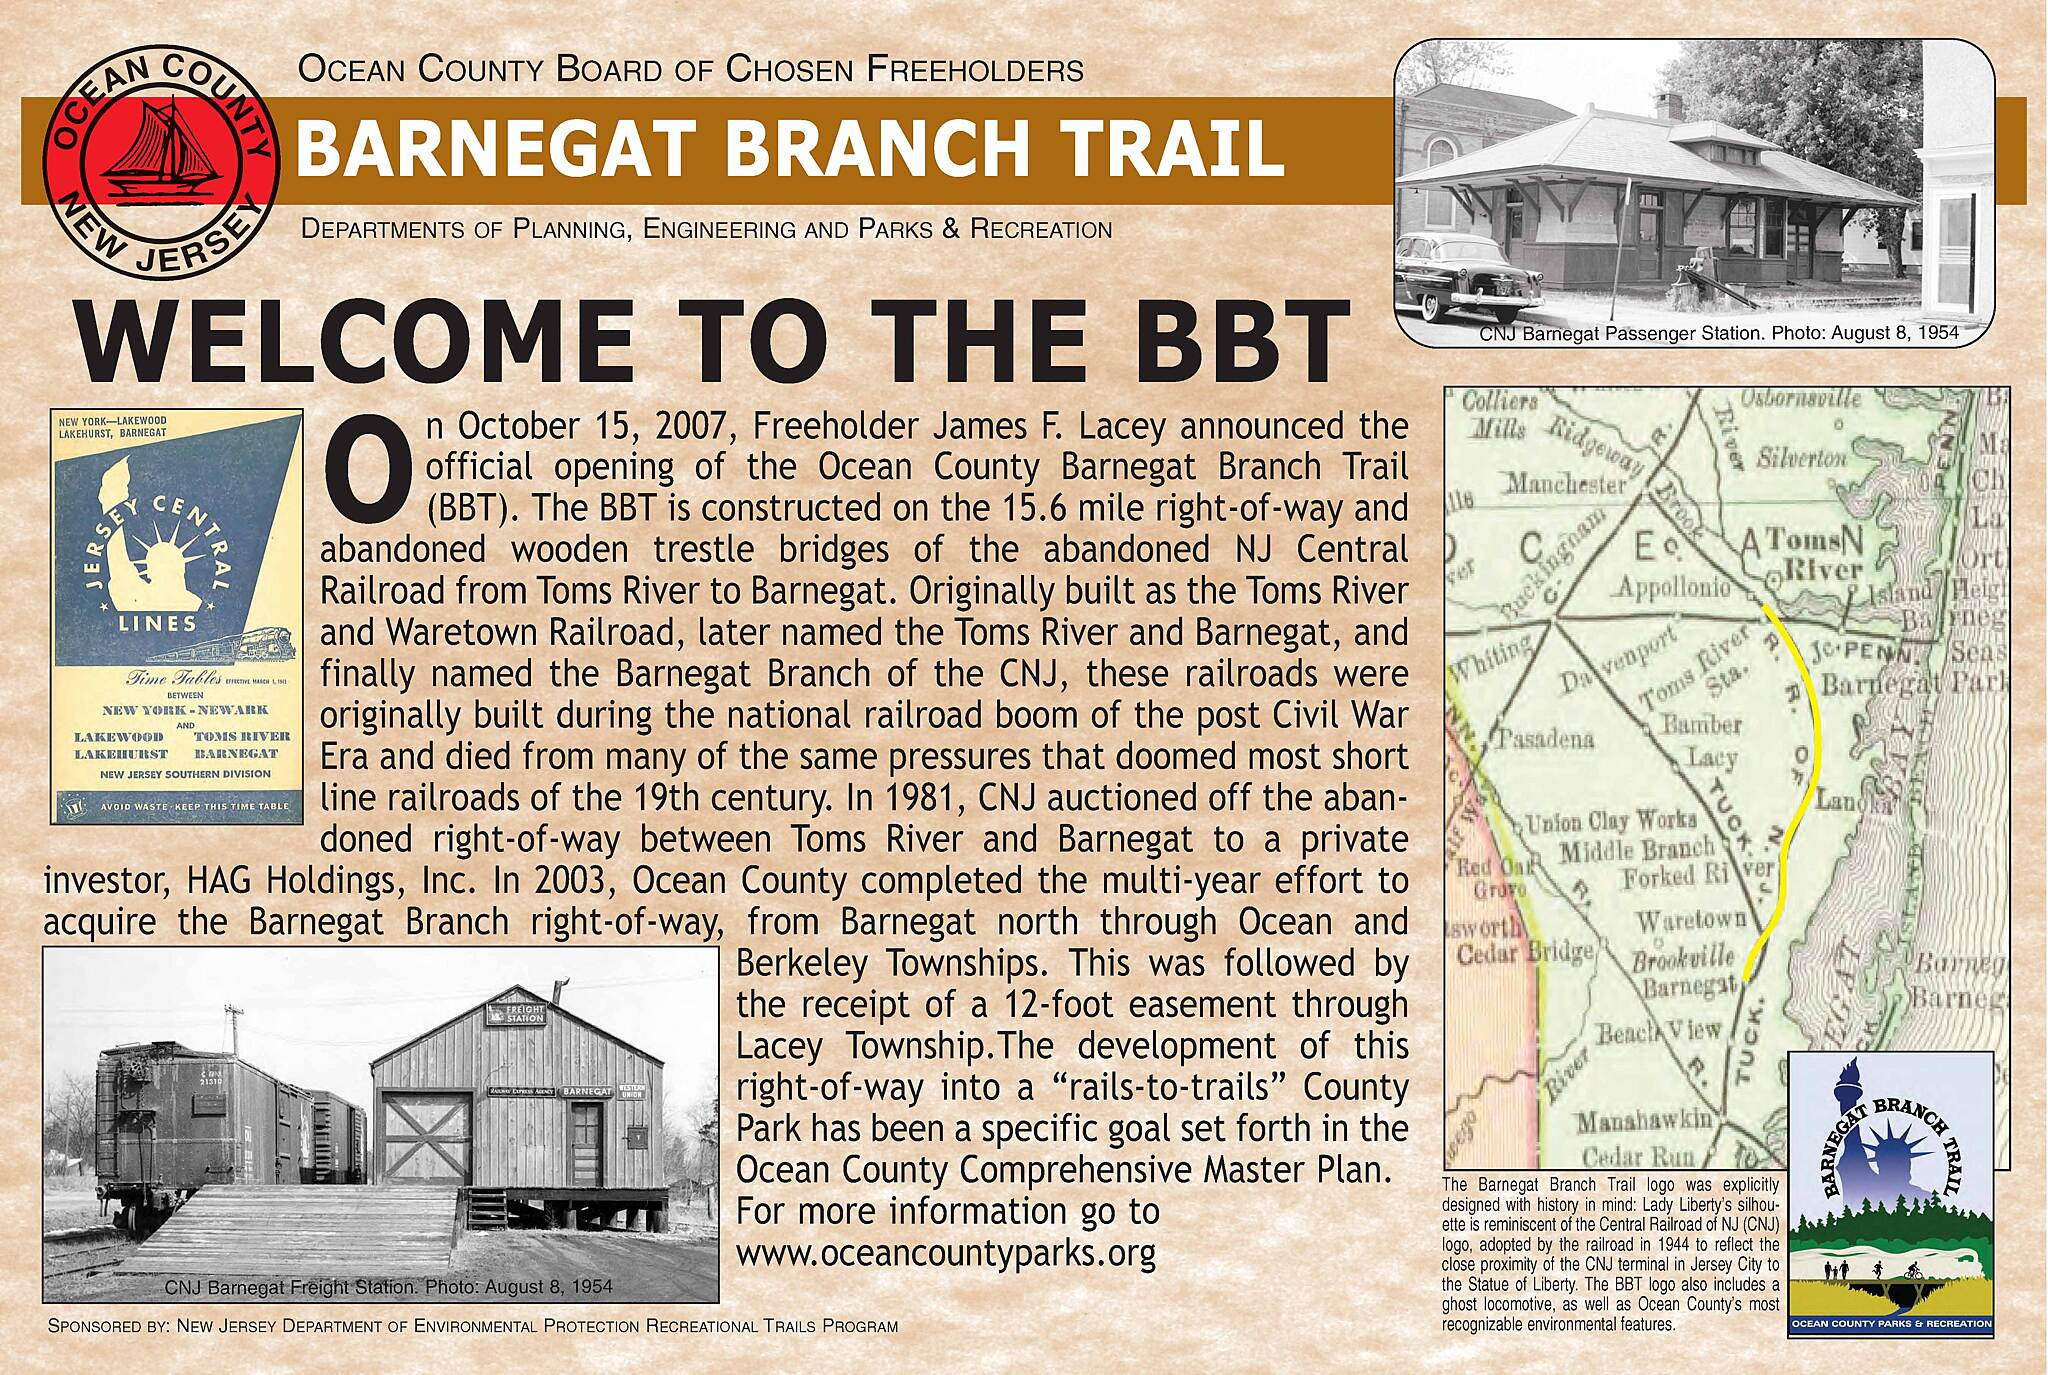 Barnegat Branch Trail WELCOME Interplative Signage